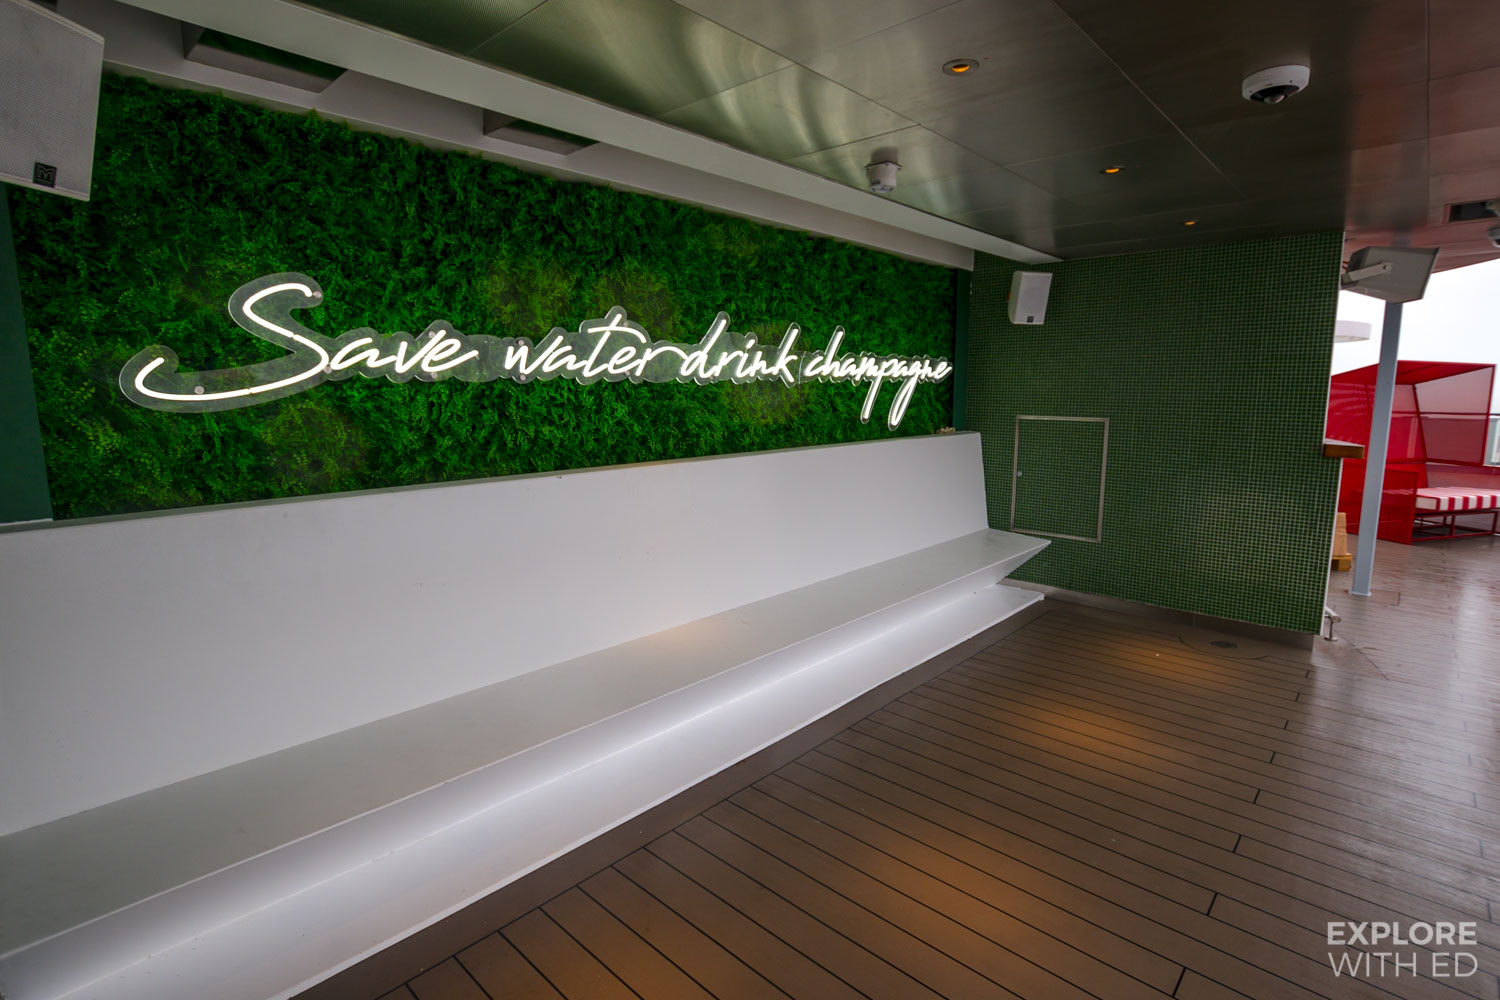 Save water drink champagne neon sign Scarlet Lady